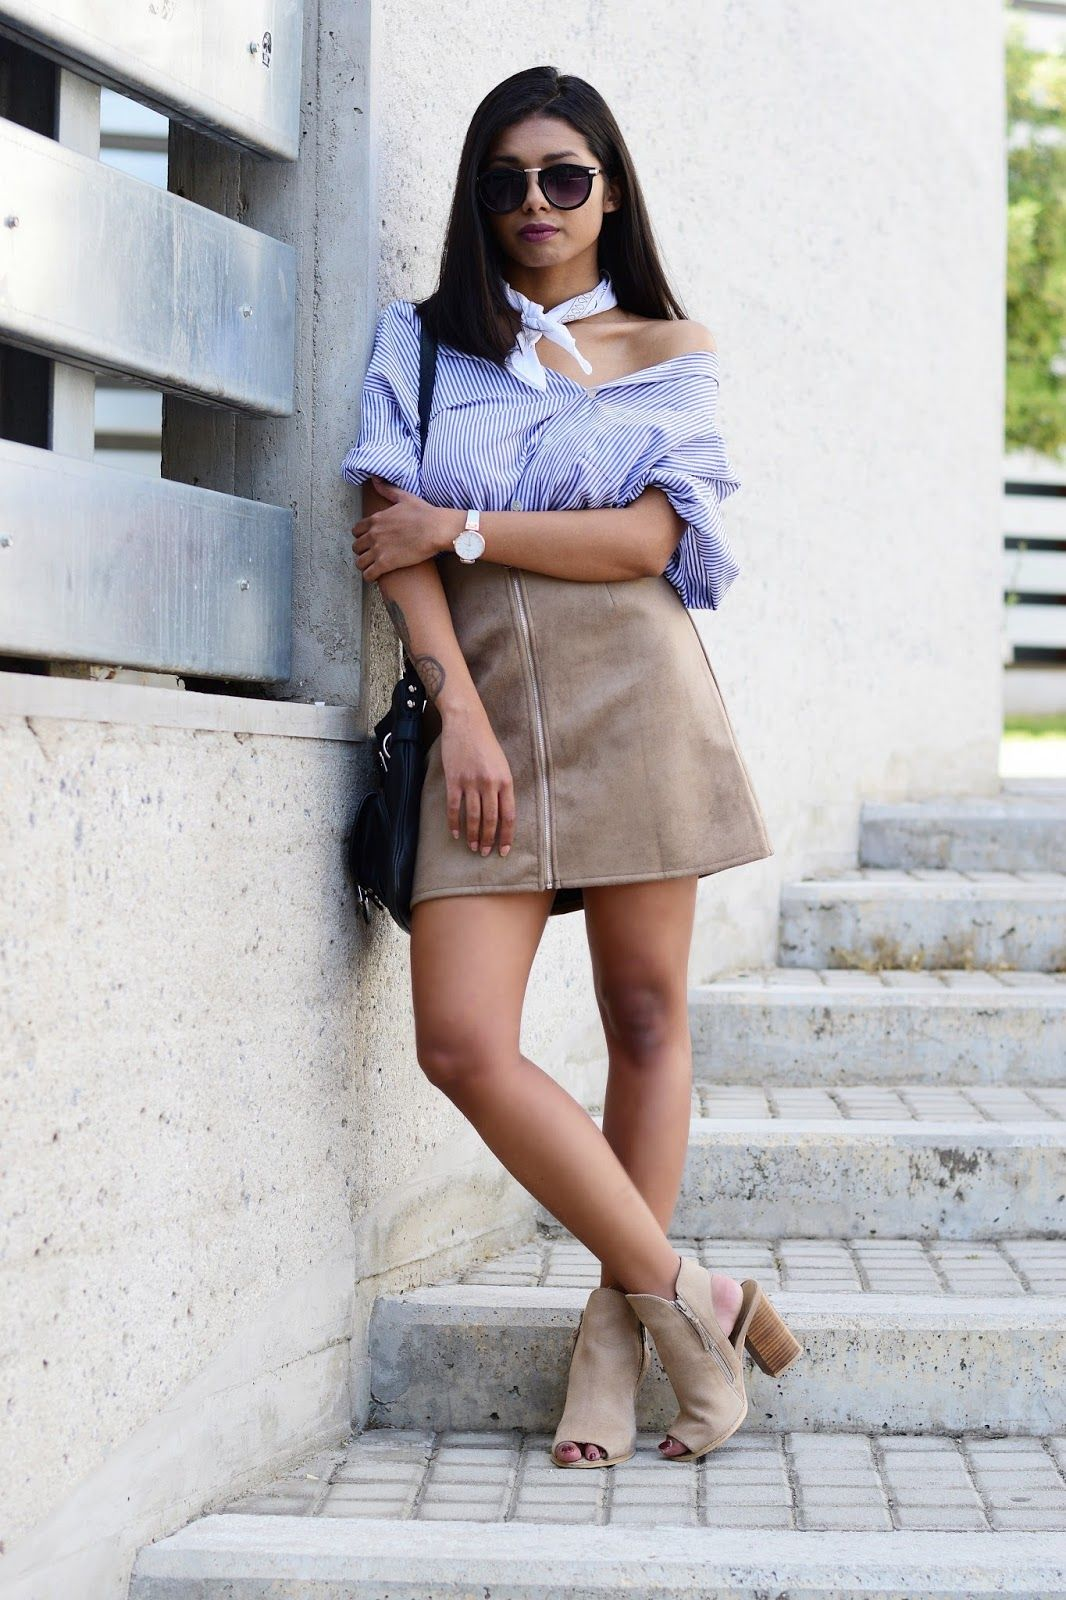 www.streetstylecity.blogspot.com Fashion inspired by the people in the street ootd look outfit sexy heels legs woman girl leather skirt miniskirt boots suede+skirt+outftit+inspiration+style.JPG (1066×1600)